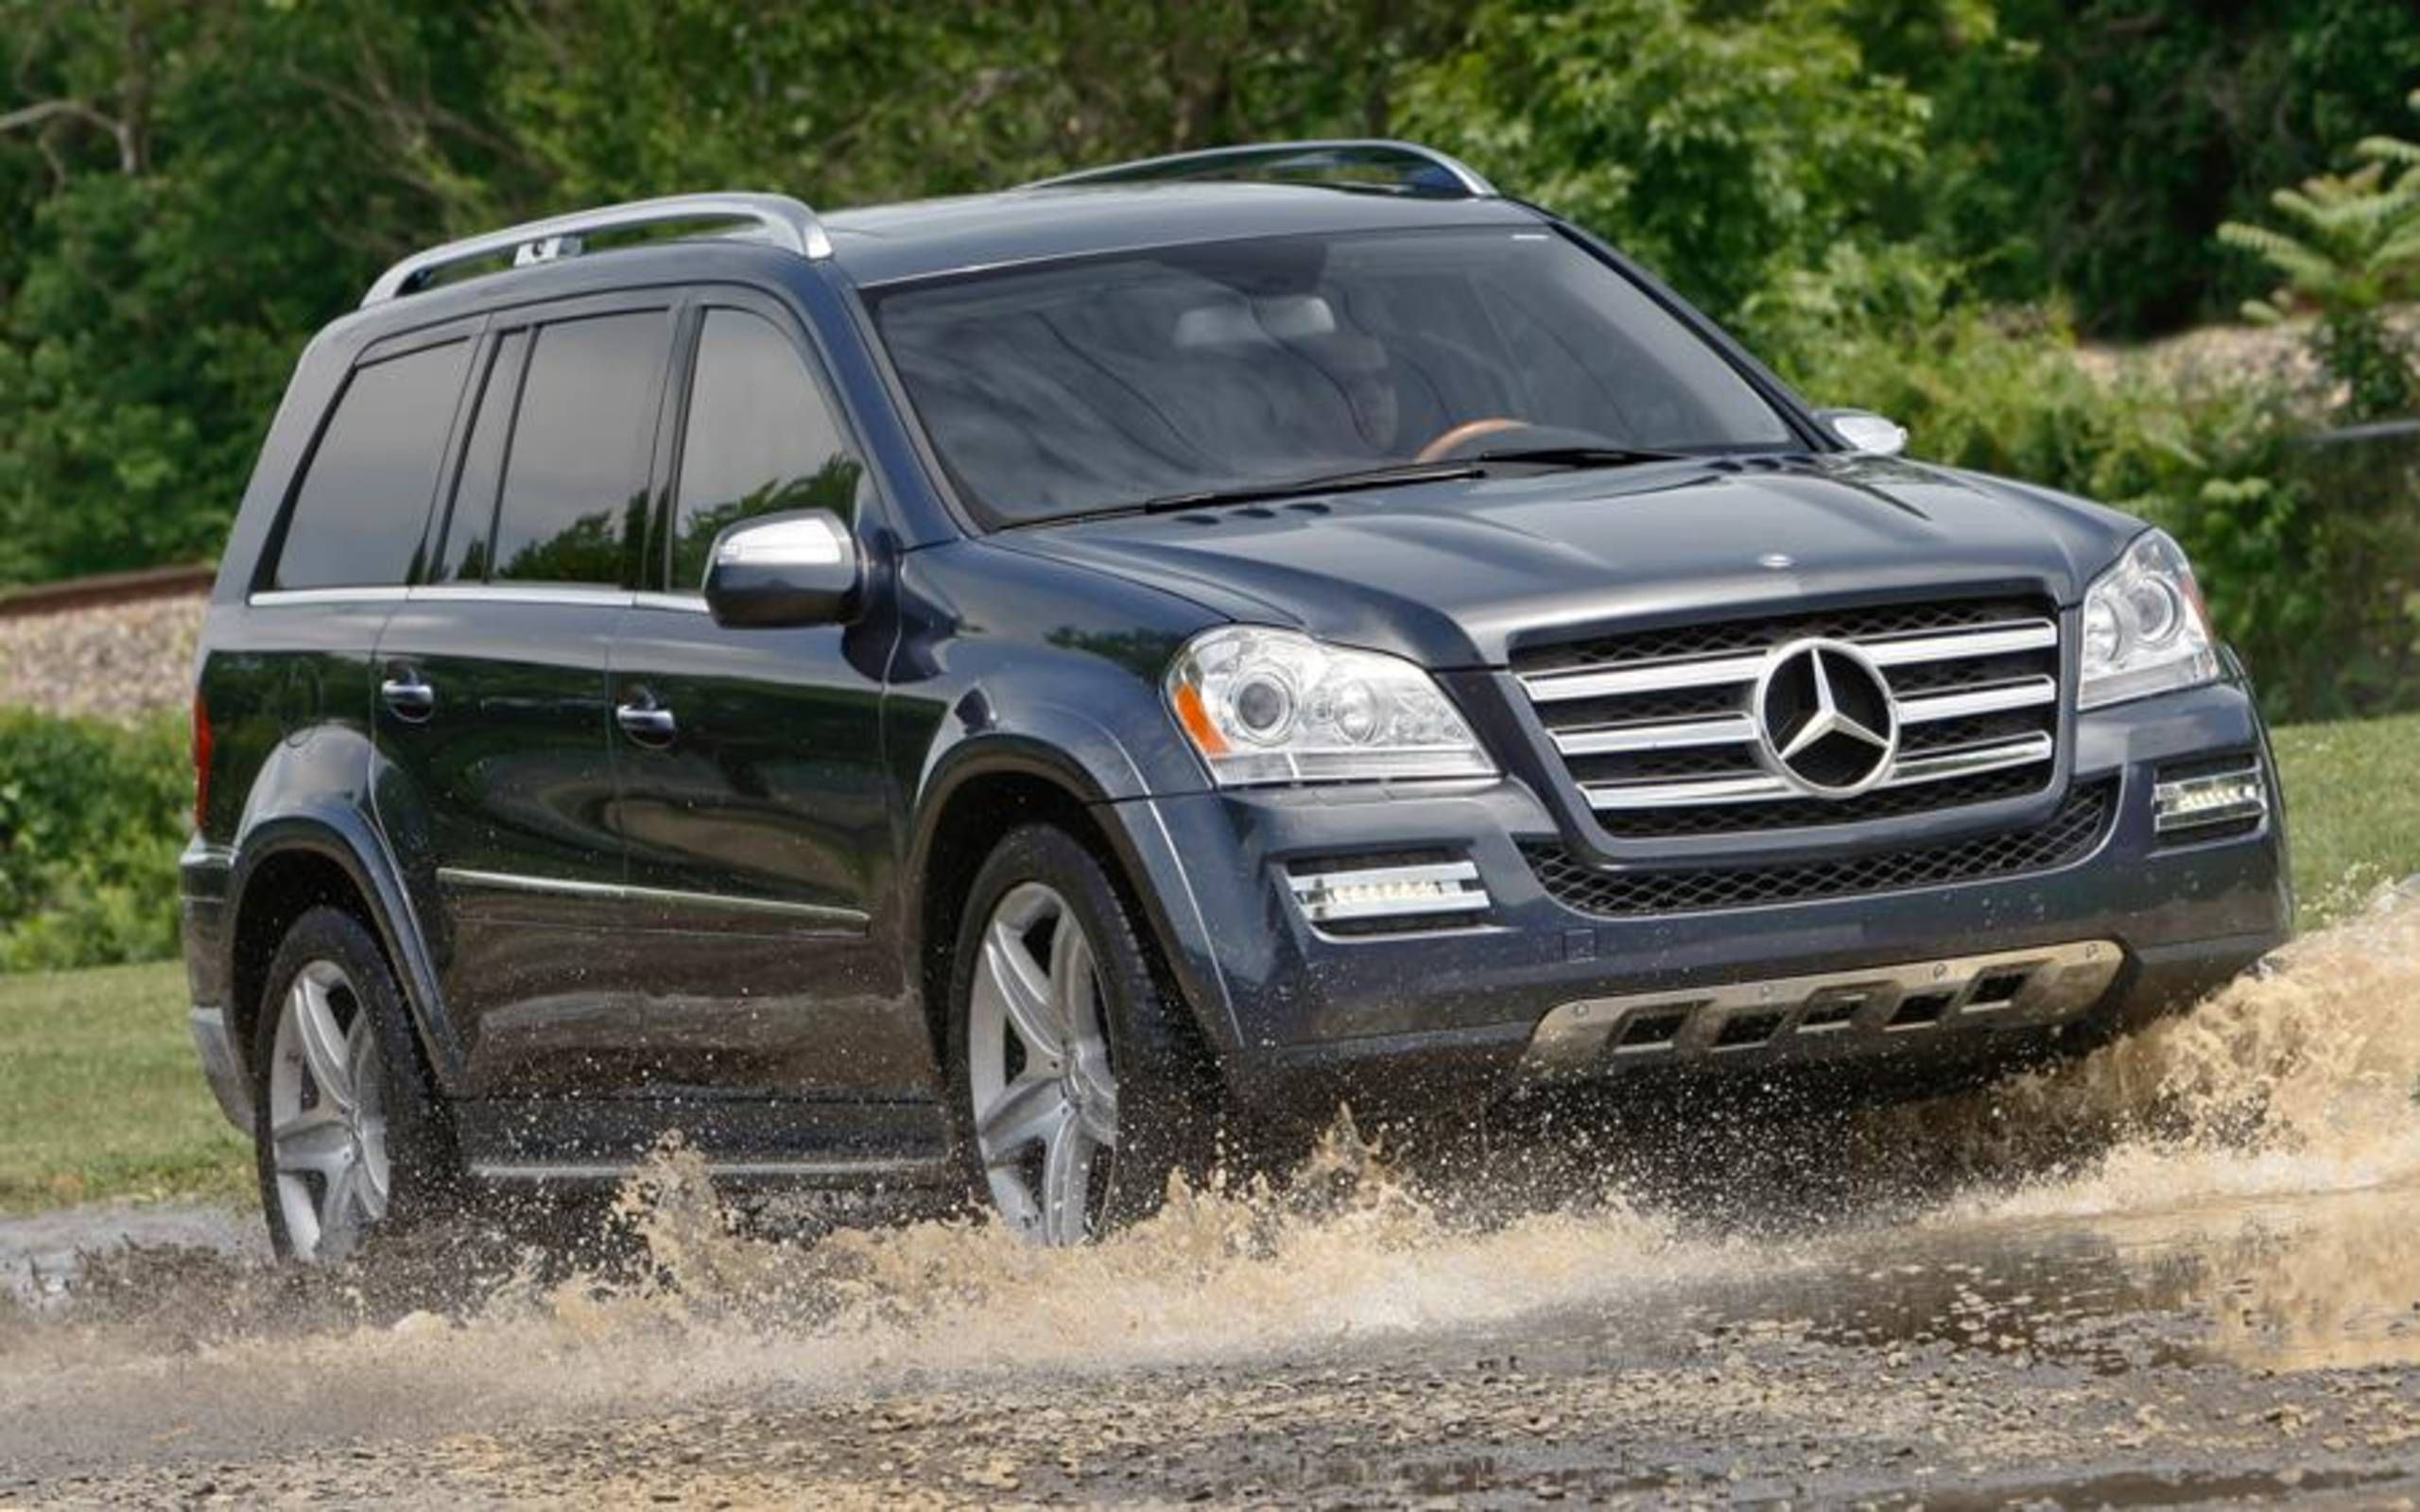 2012 Mercedes Benz Gl550 4matic Review Notes Exactly What A Mercedes Suv Should Be